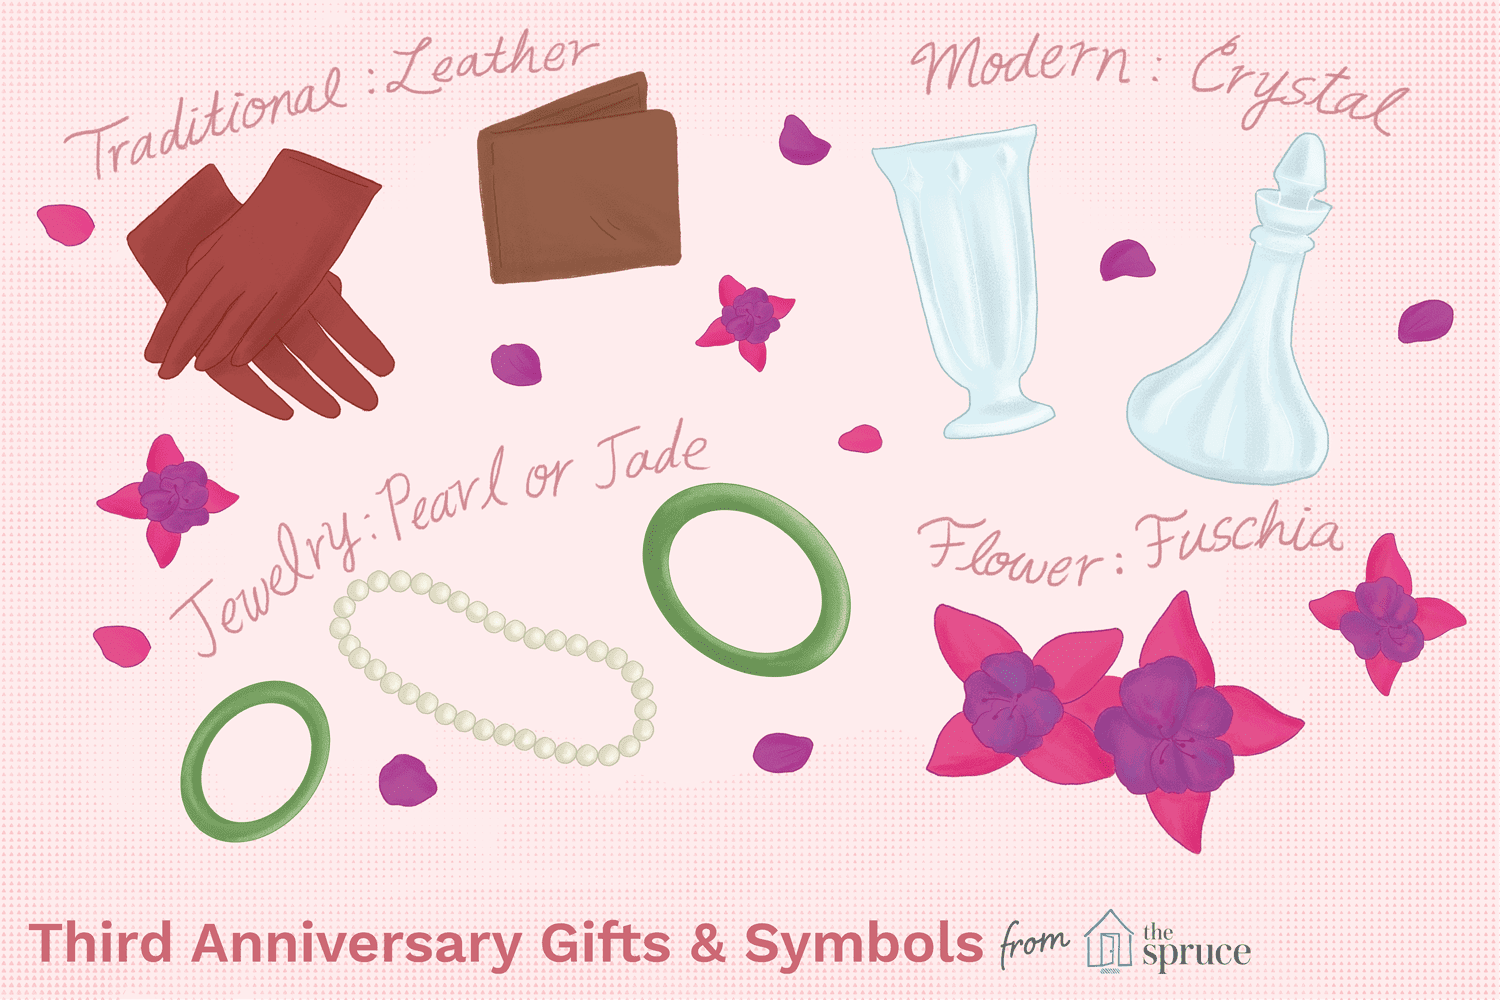 Year 3 Wedding Anniversary Gifts: Ideas And Symbols For Your Third Wedding Anniversary